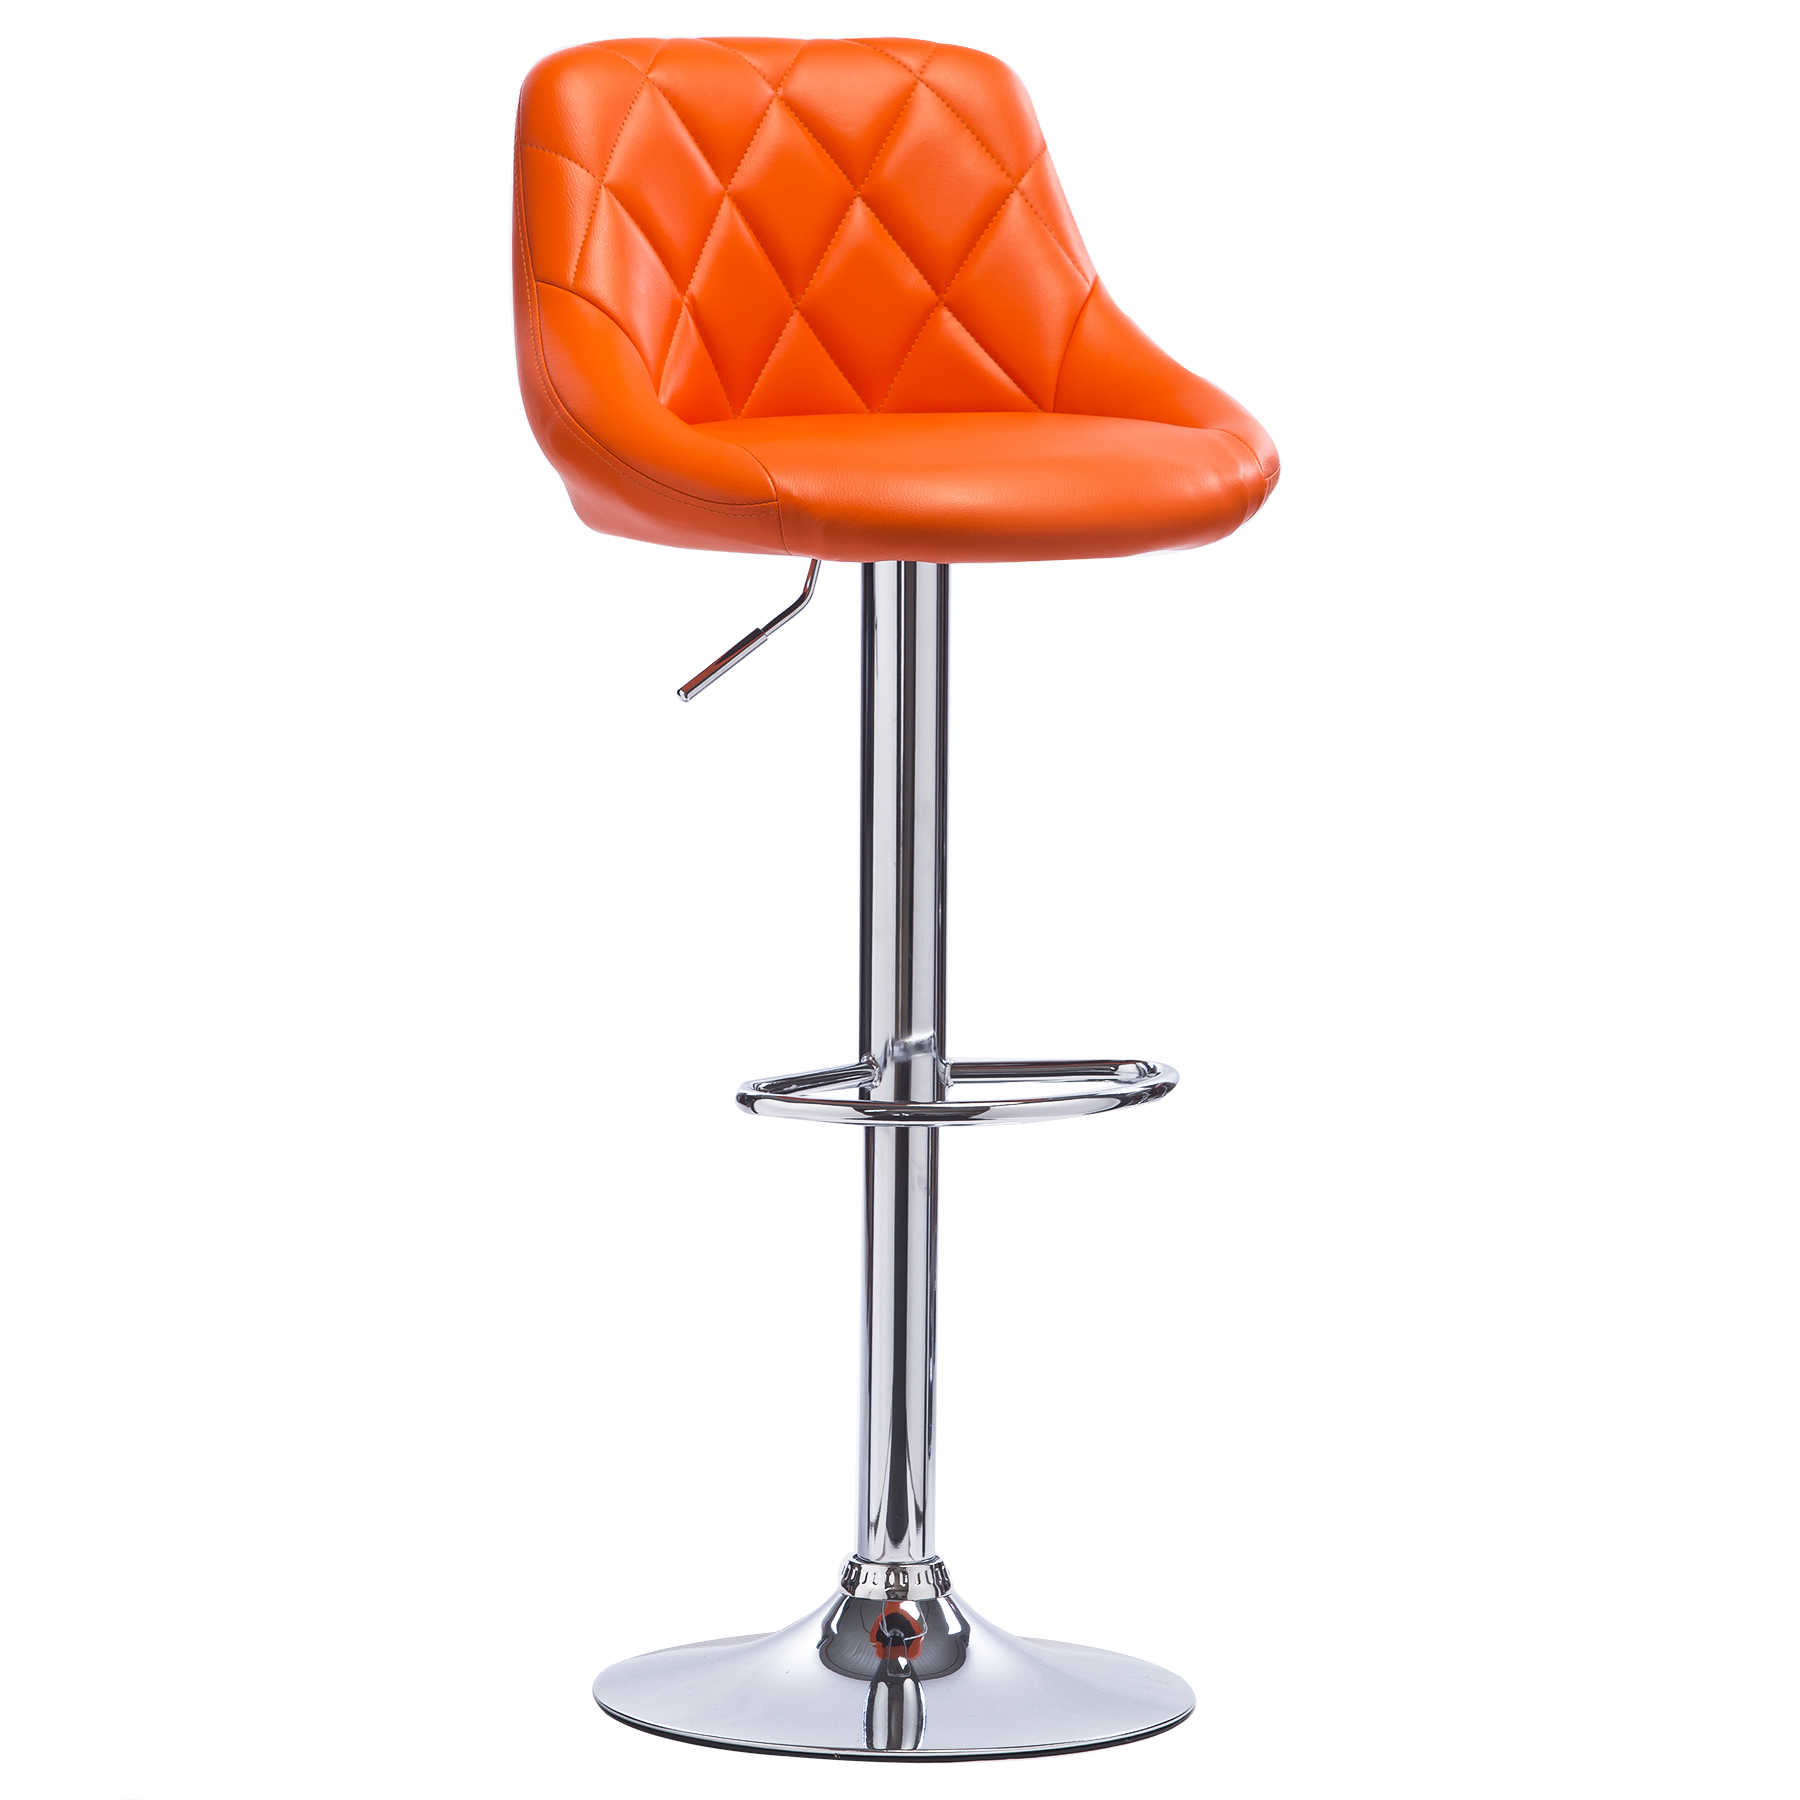 1 Pcs Bar Stools Swivel Kitchen Breakfast Stool Chair